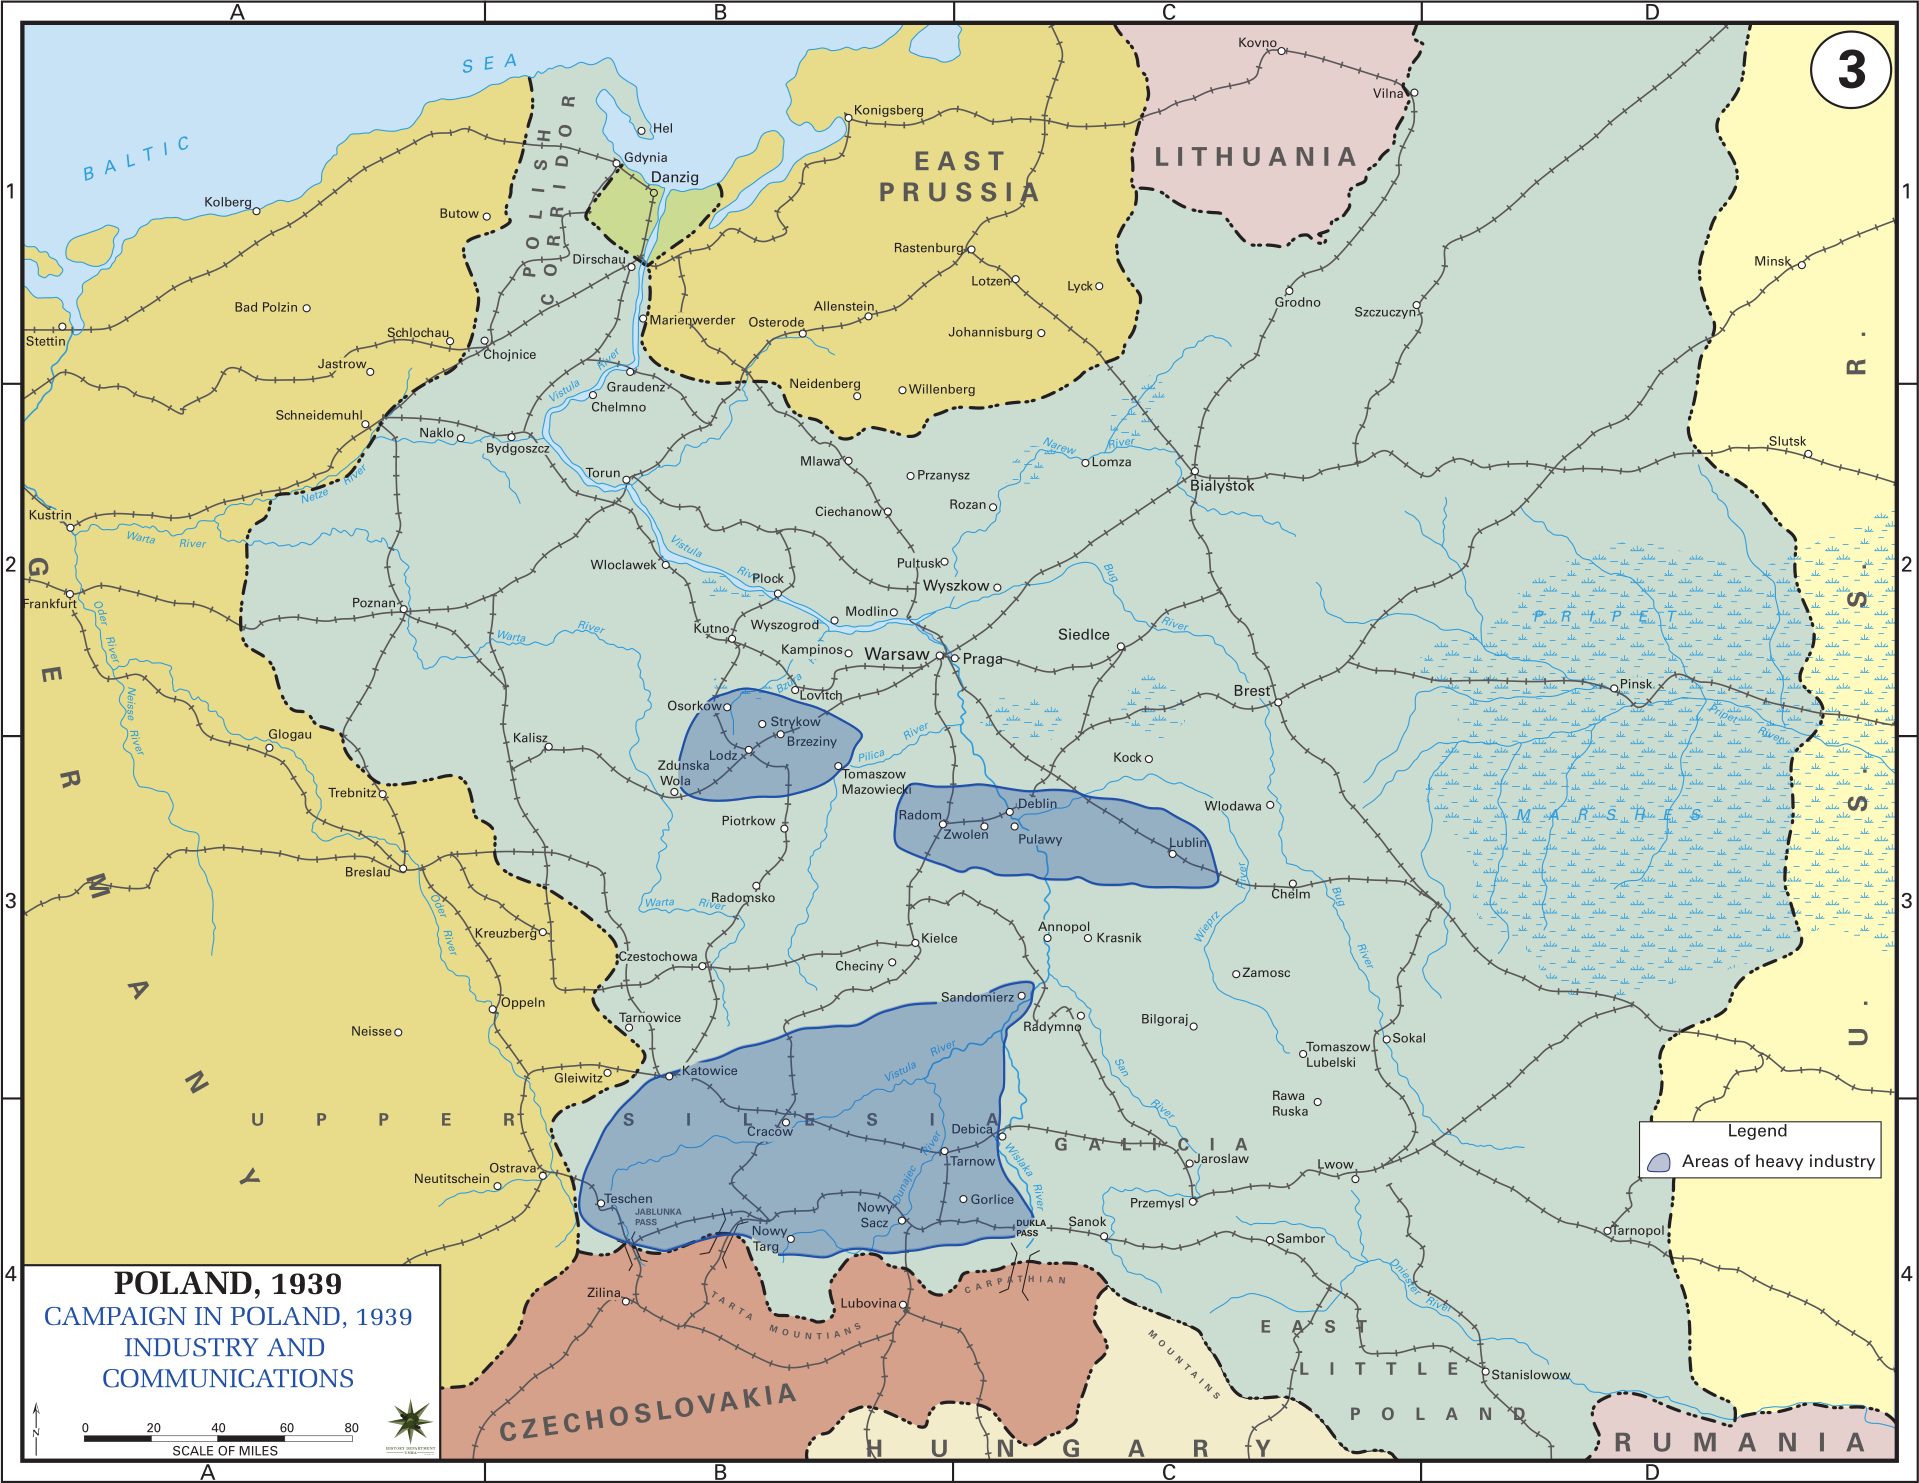 Eastern Front Maps of World War II - Inflab - Medium on poltava map, detailed city street map, donbass ukraine map, dnipropetrovsk ukraine map, donetsk map, ato ukraine map, ukraine religion map, kiev map, odessa ukraine map, east ukraine map, belaya tserkov ukraine map, bessarabia ukraine map, crimea region ukraine map, ukraine military bases map, minsk map, the lake of ozarks map, vinnytsia ukraine map, kramatorsk ukraine map, kharkiv military map, kharkiv ukraine map,